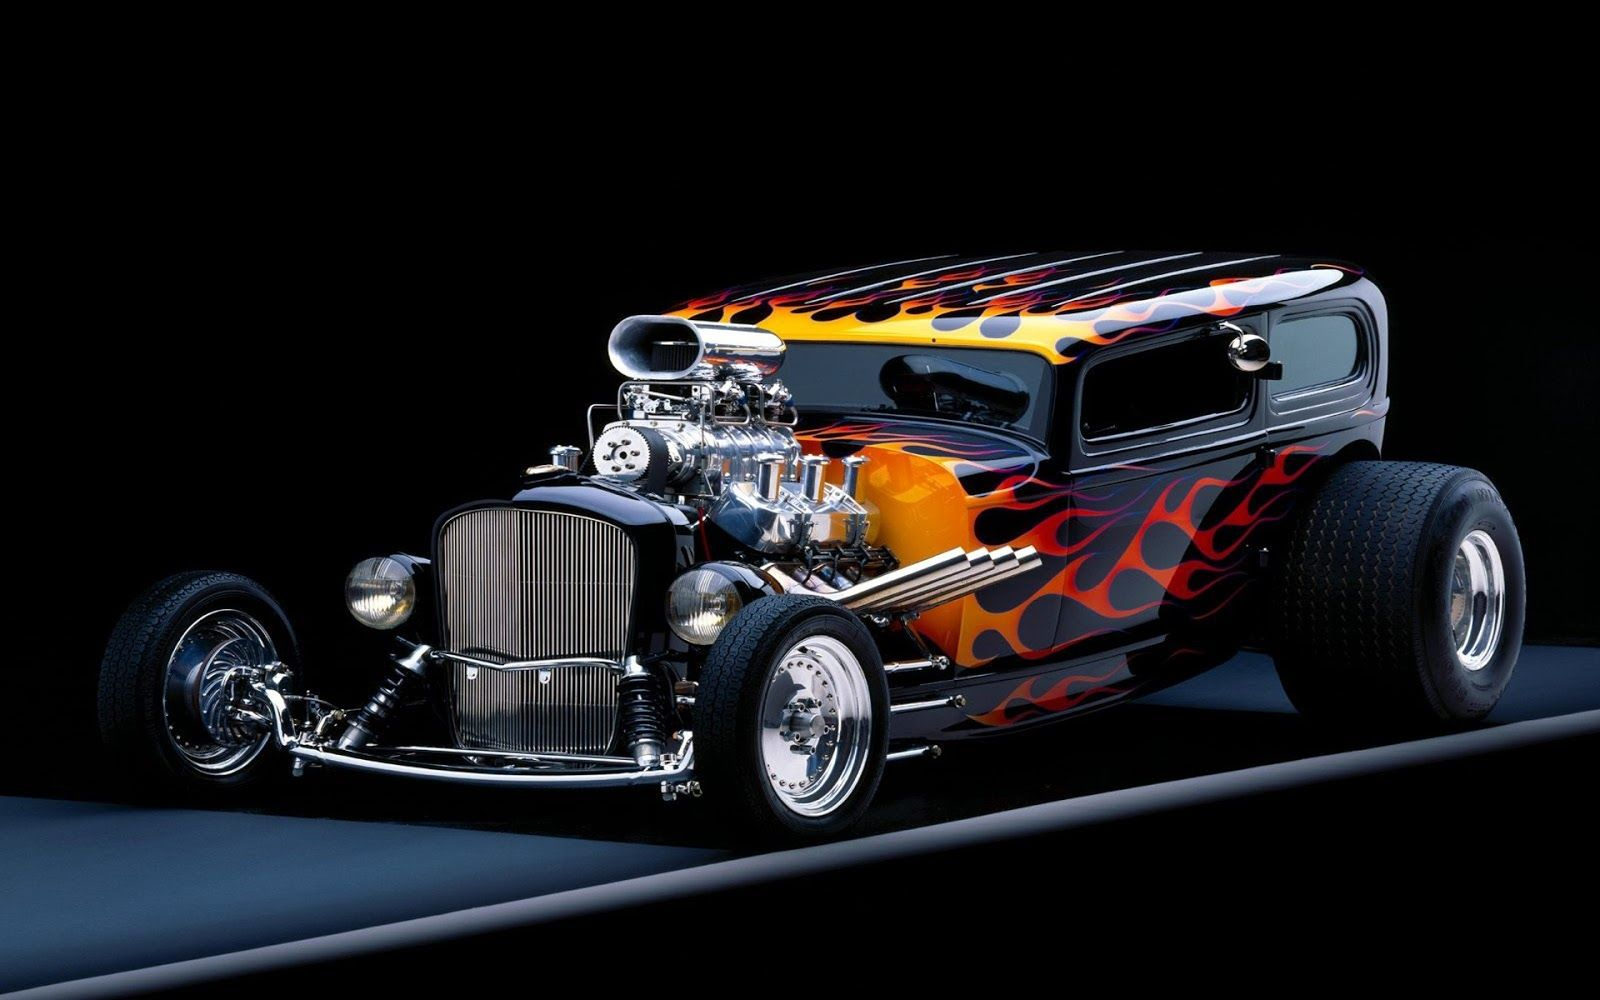 Hawt Rod American Hot Rod High Quality Wallpaper Images 1080p Hd Pictures Carros Hot Rod Carros Quentes Carros